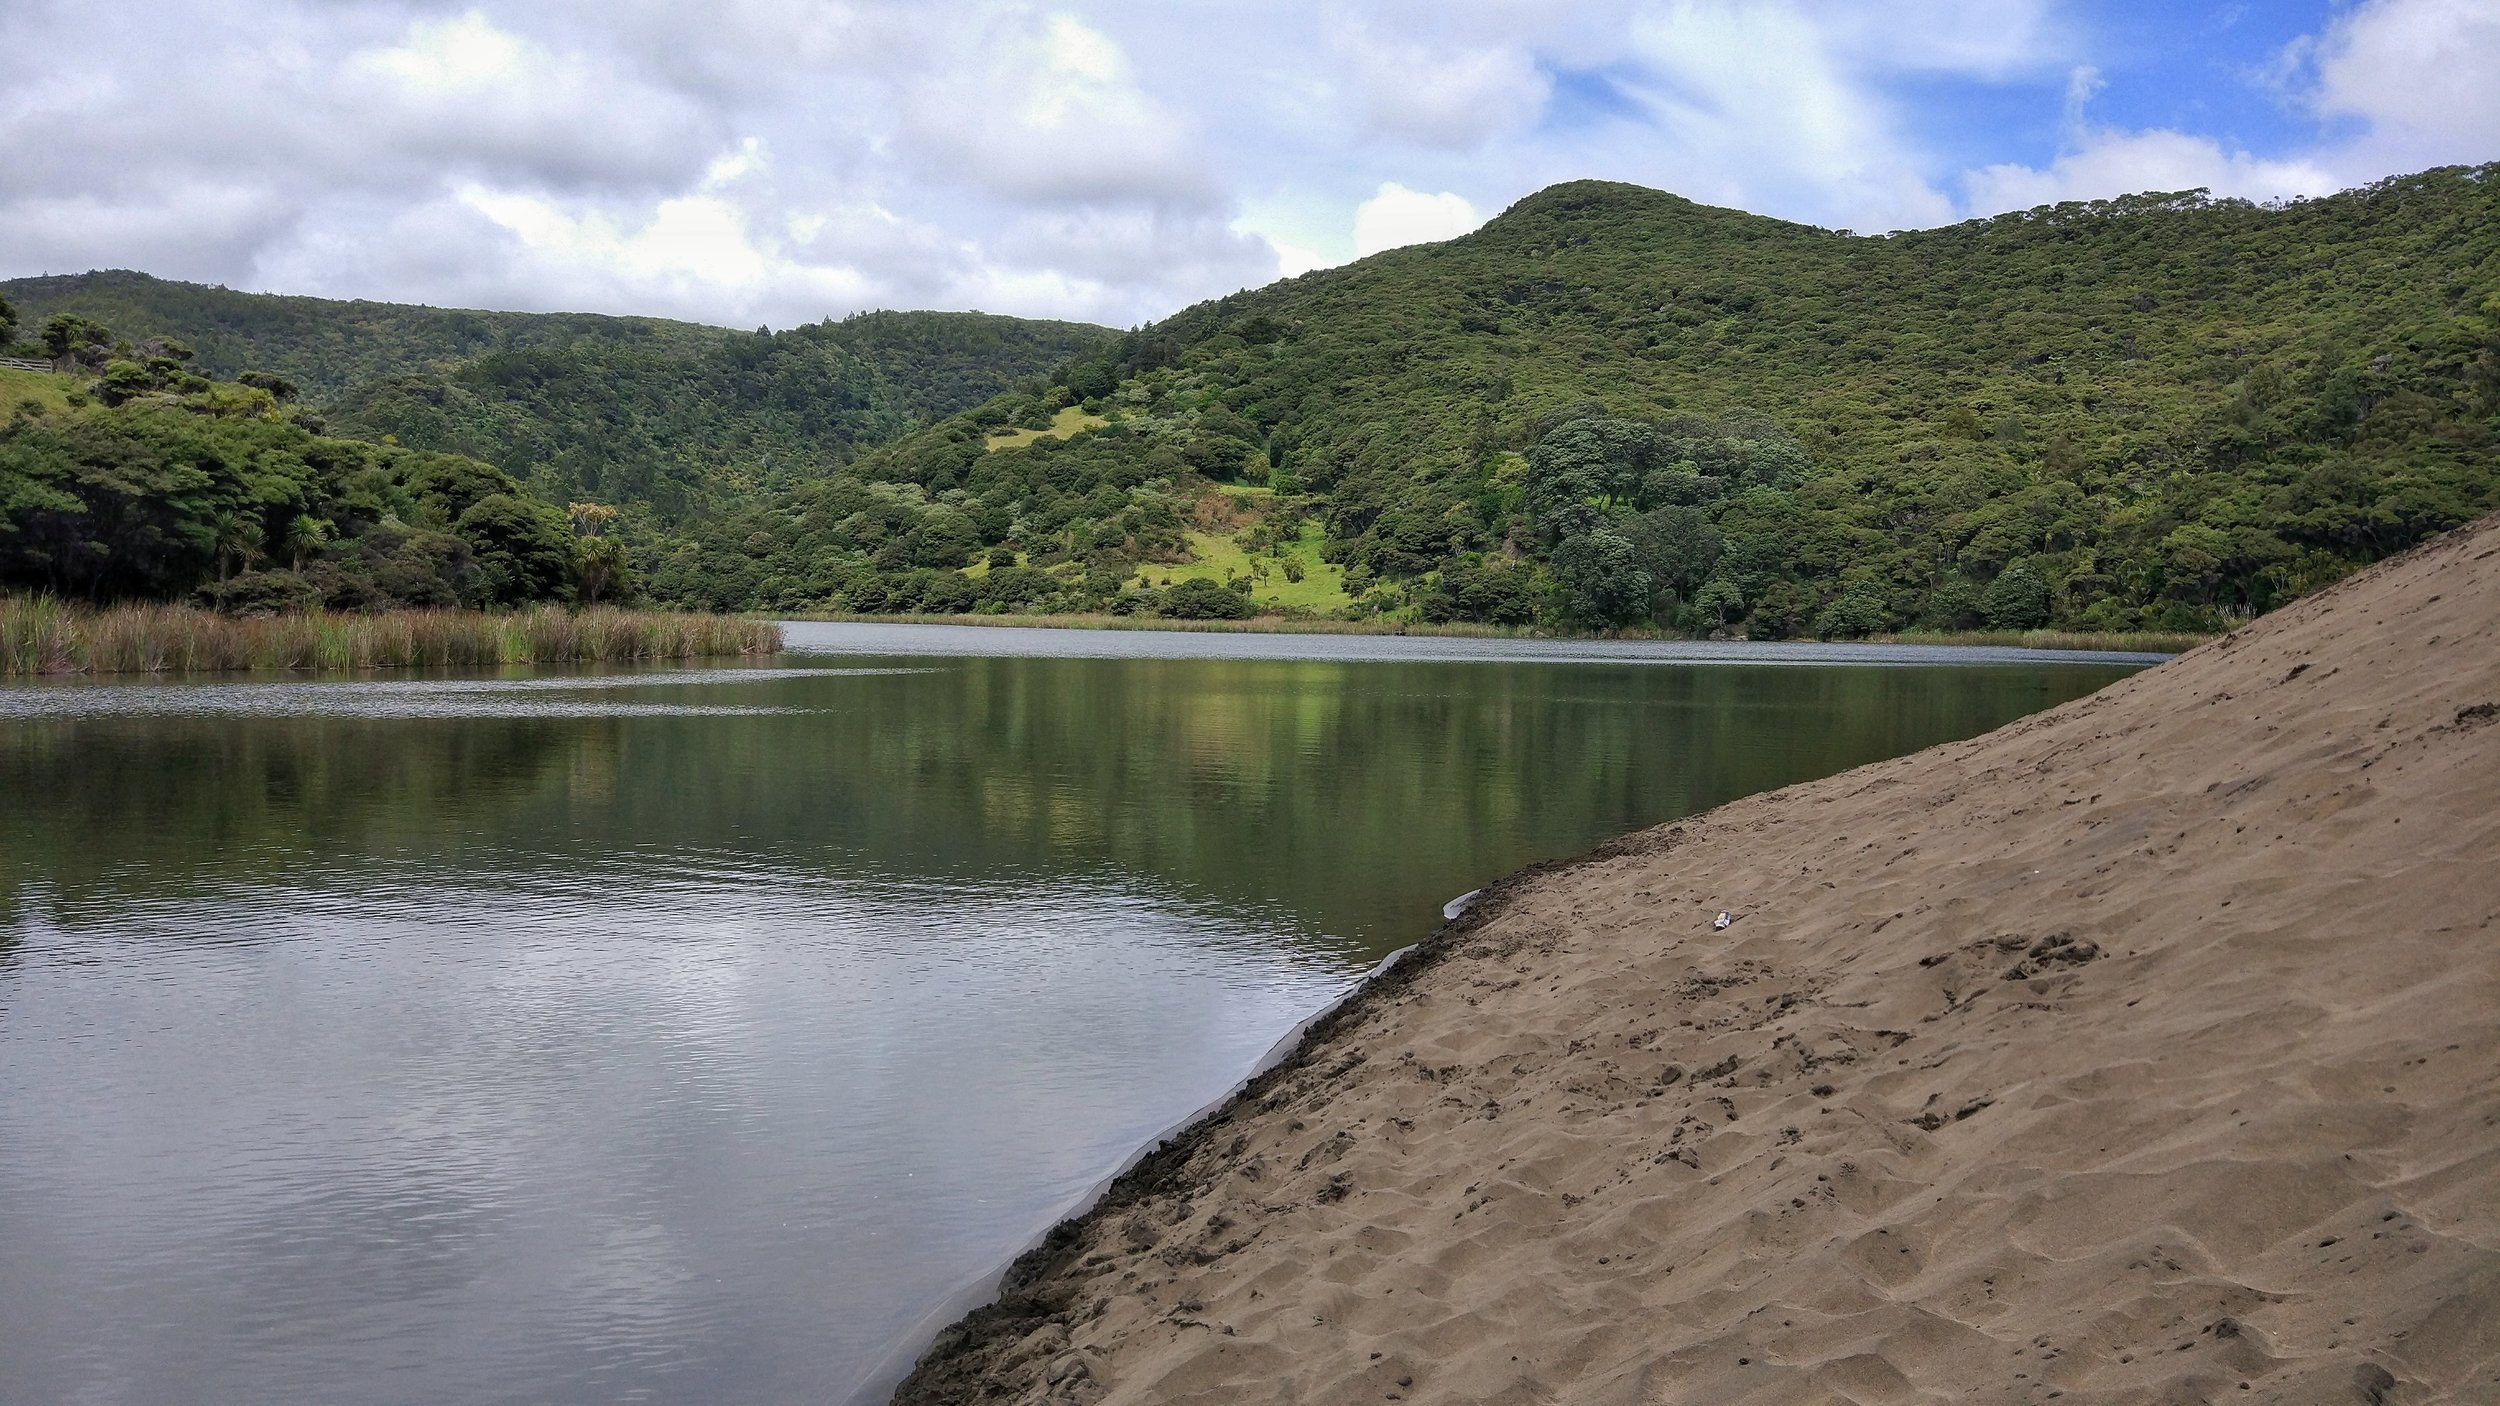 Lake wainamu: nature pure!